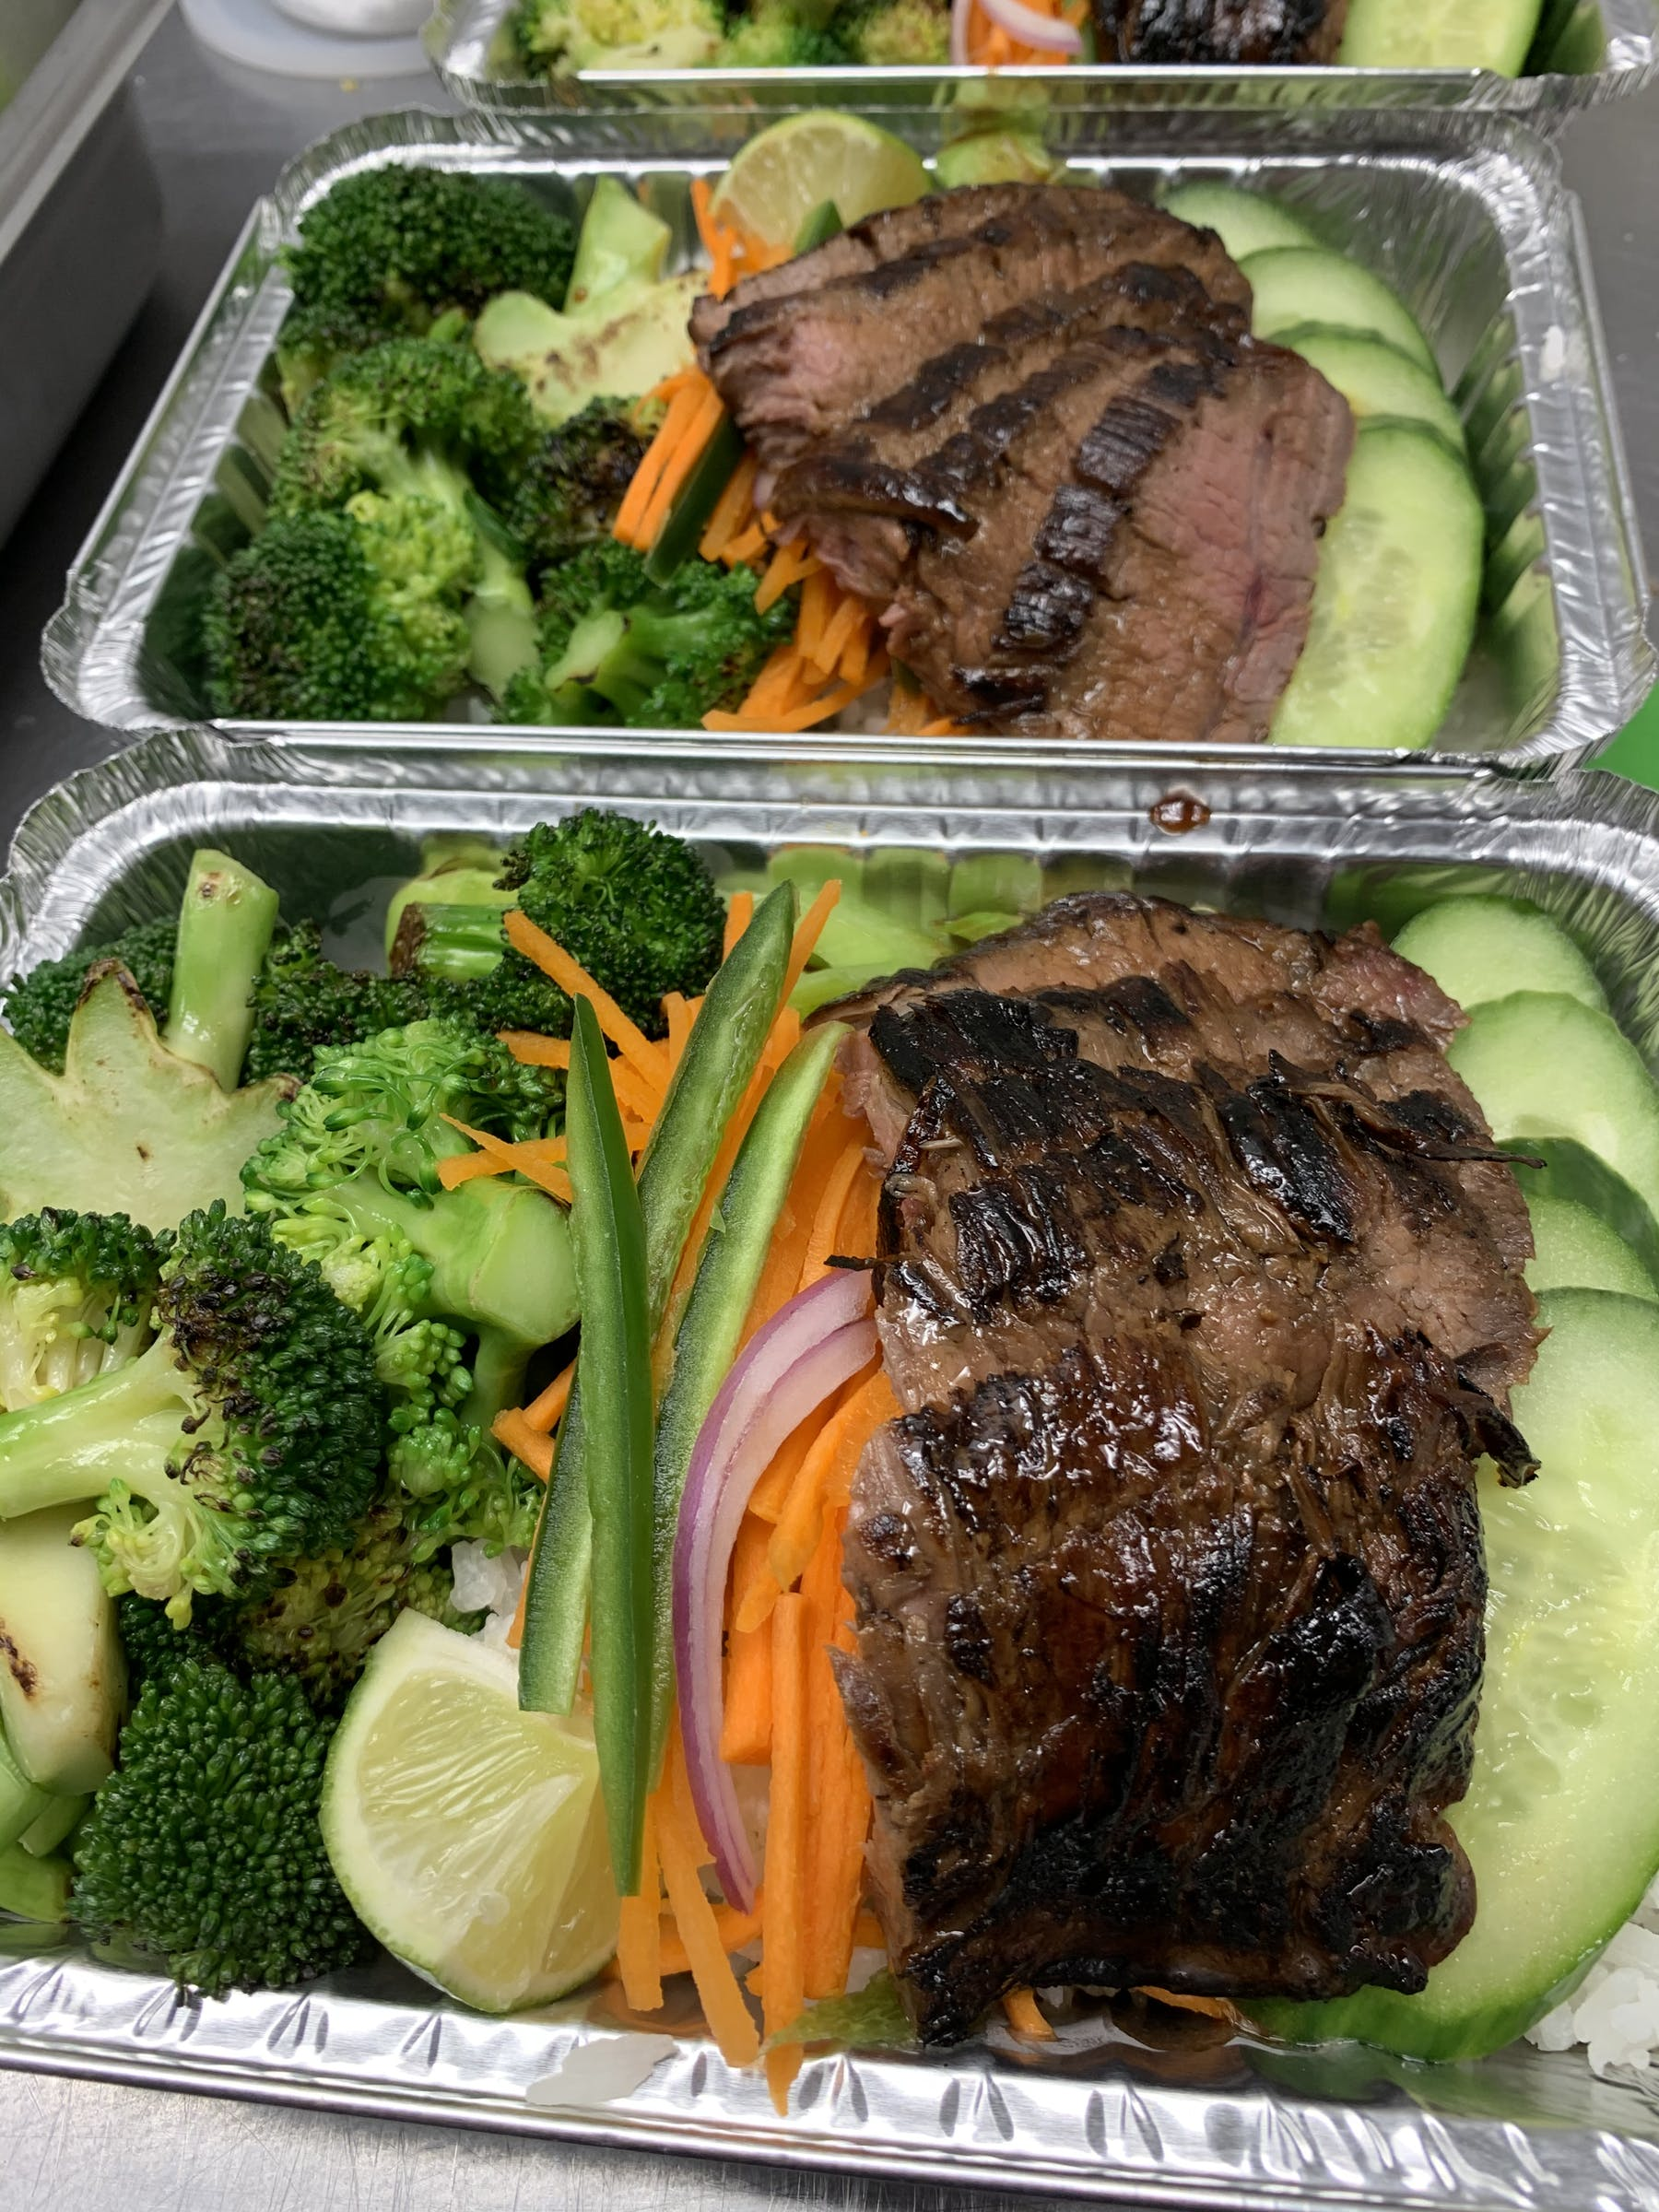 a tray of food with broccoli